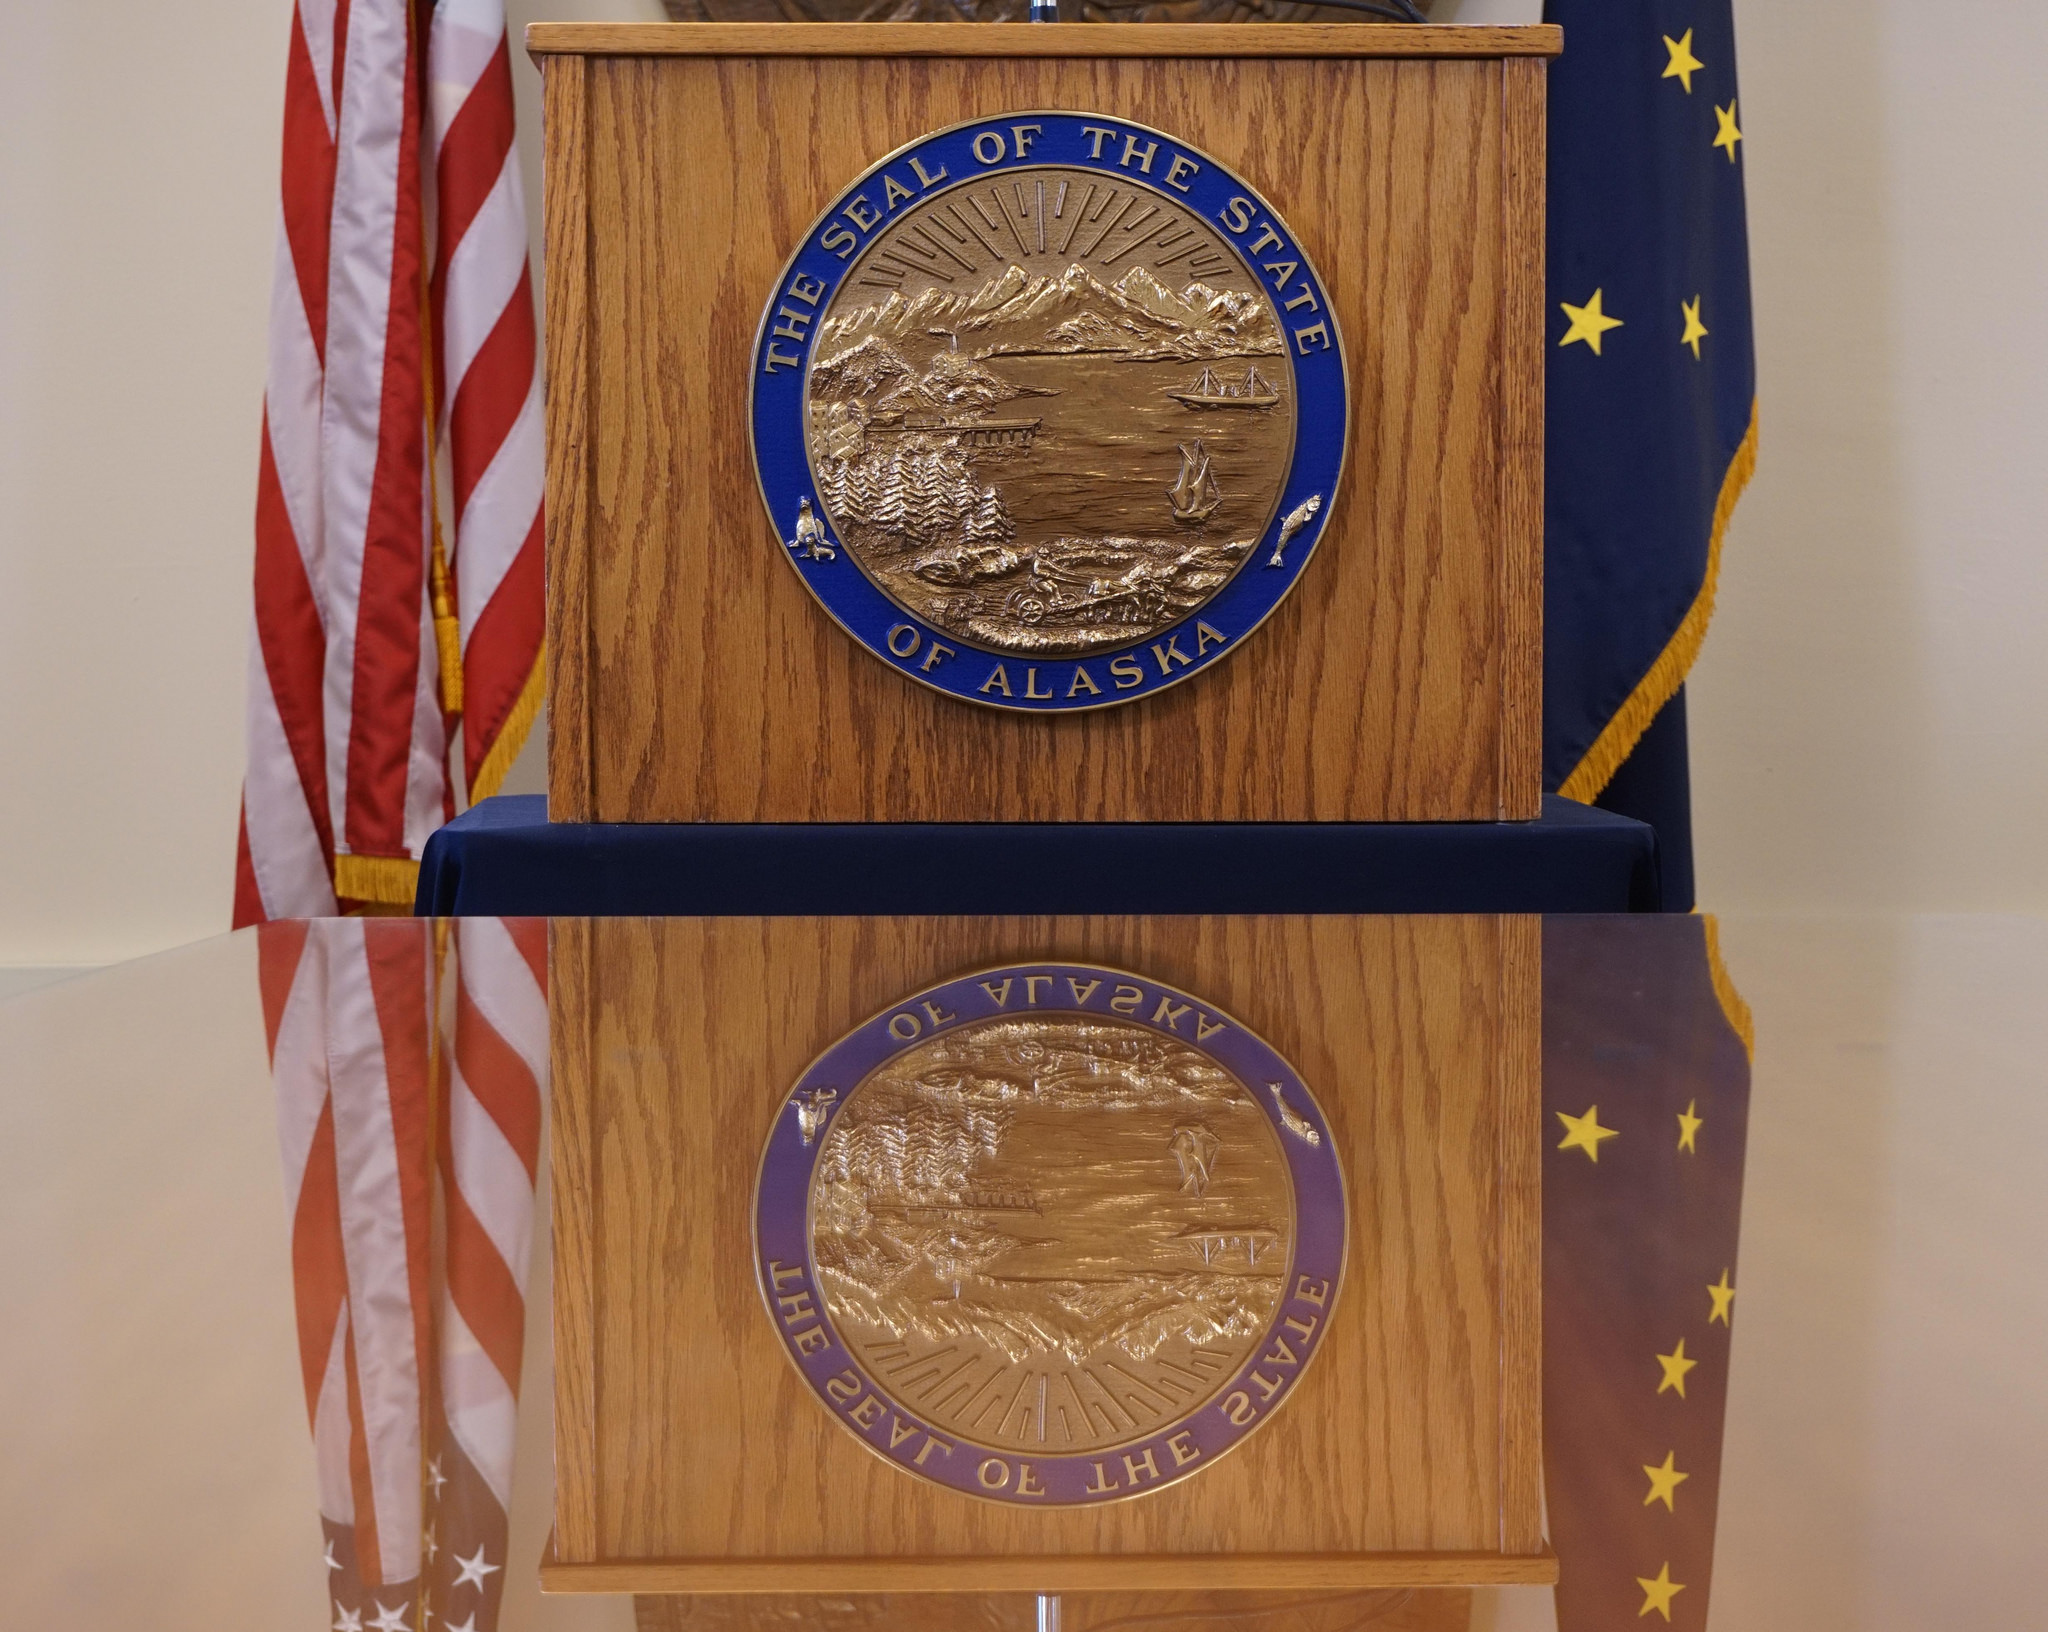 The governor's podium and seal of the state of Alaska in the governor's temporary offices in Juneau, June 19, 2016. (Photo by Jeremy Hsieh/KTOO)